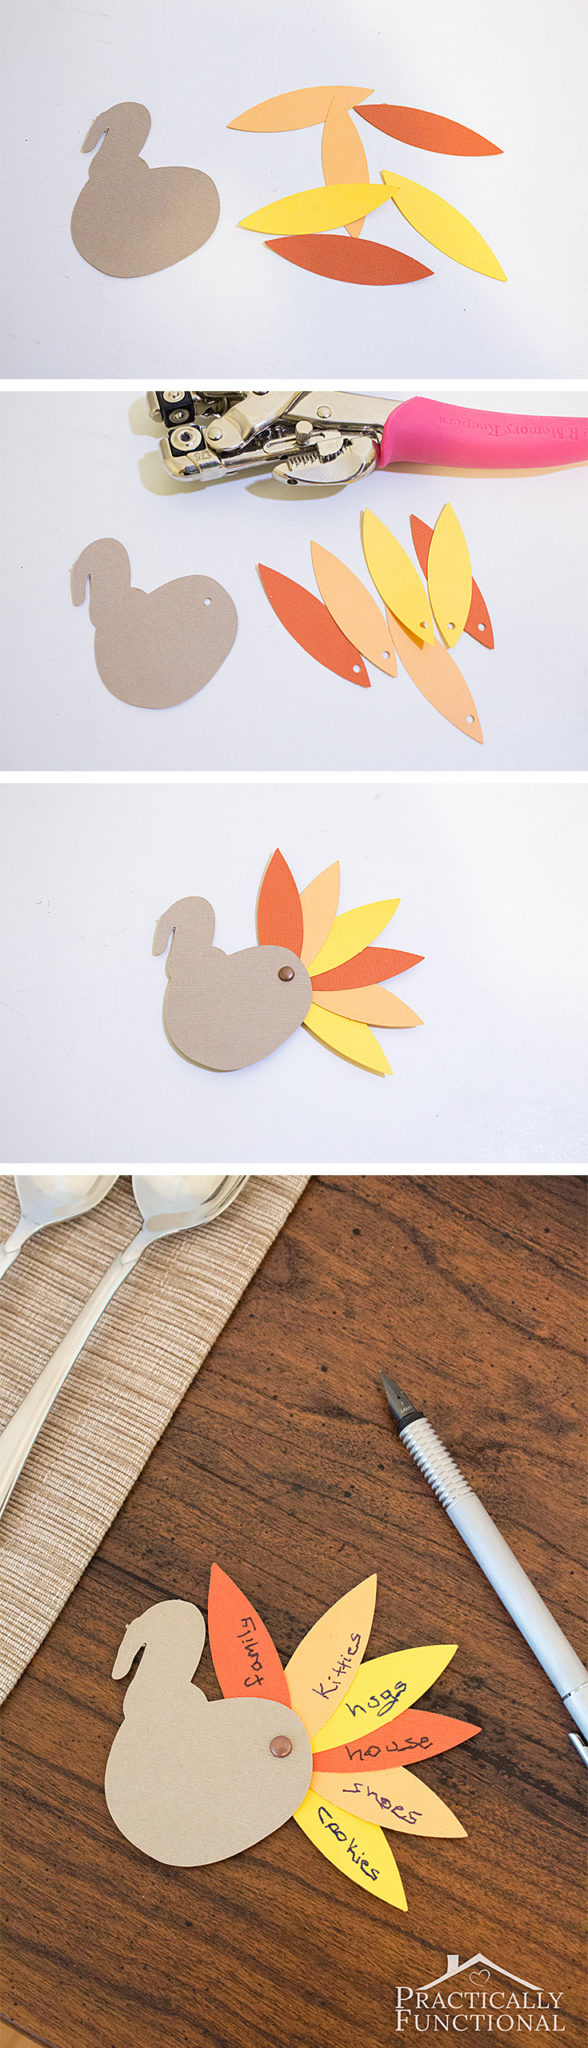 These little paper turkeys are perfect for sharing what you're thankful for this year; great Thanksgiving crafts for kids!